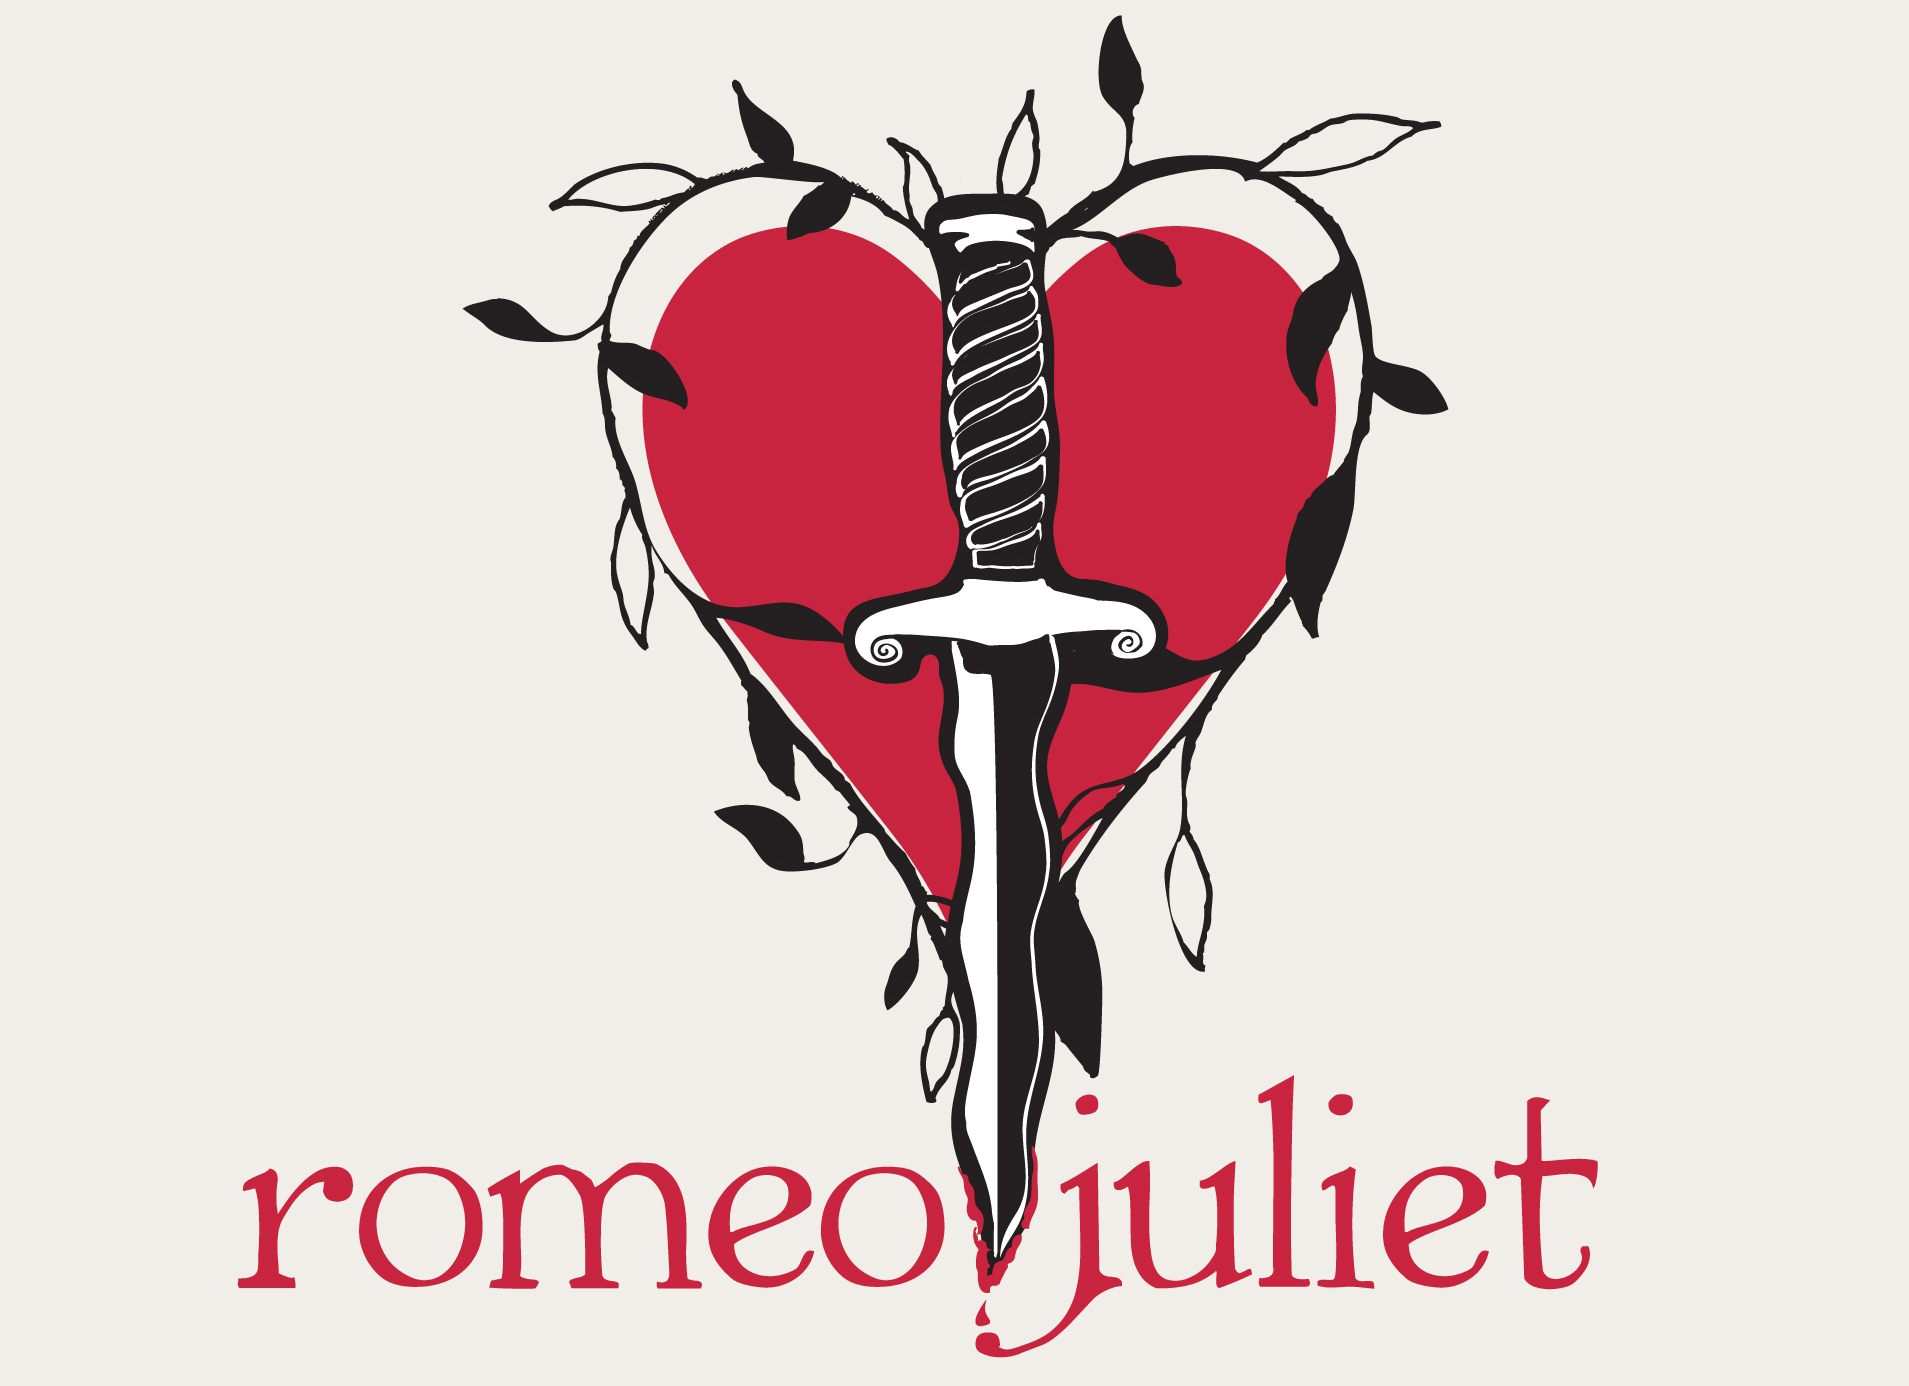 shakespeares romeo and juliet fate of free will Theme of fate in romeo and juliet by shakespeare essay 1321 words | 6 pages that they make with their own free will others believe that whatever happens during the.